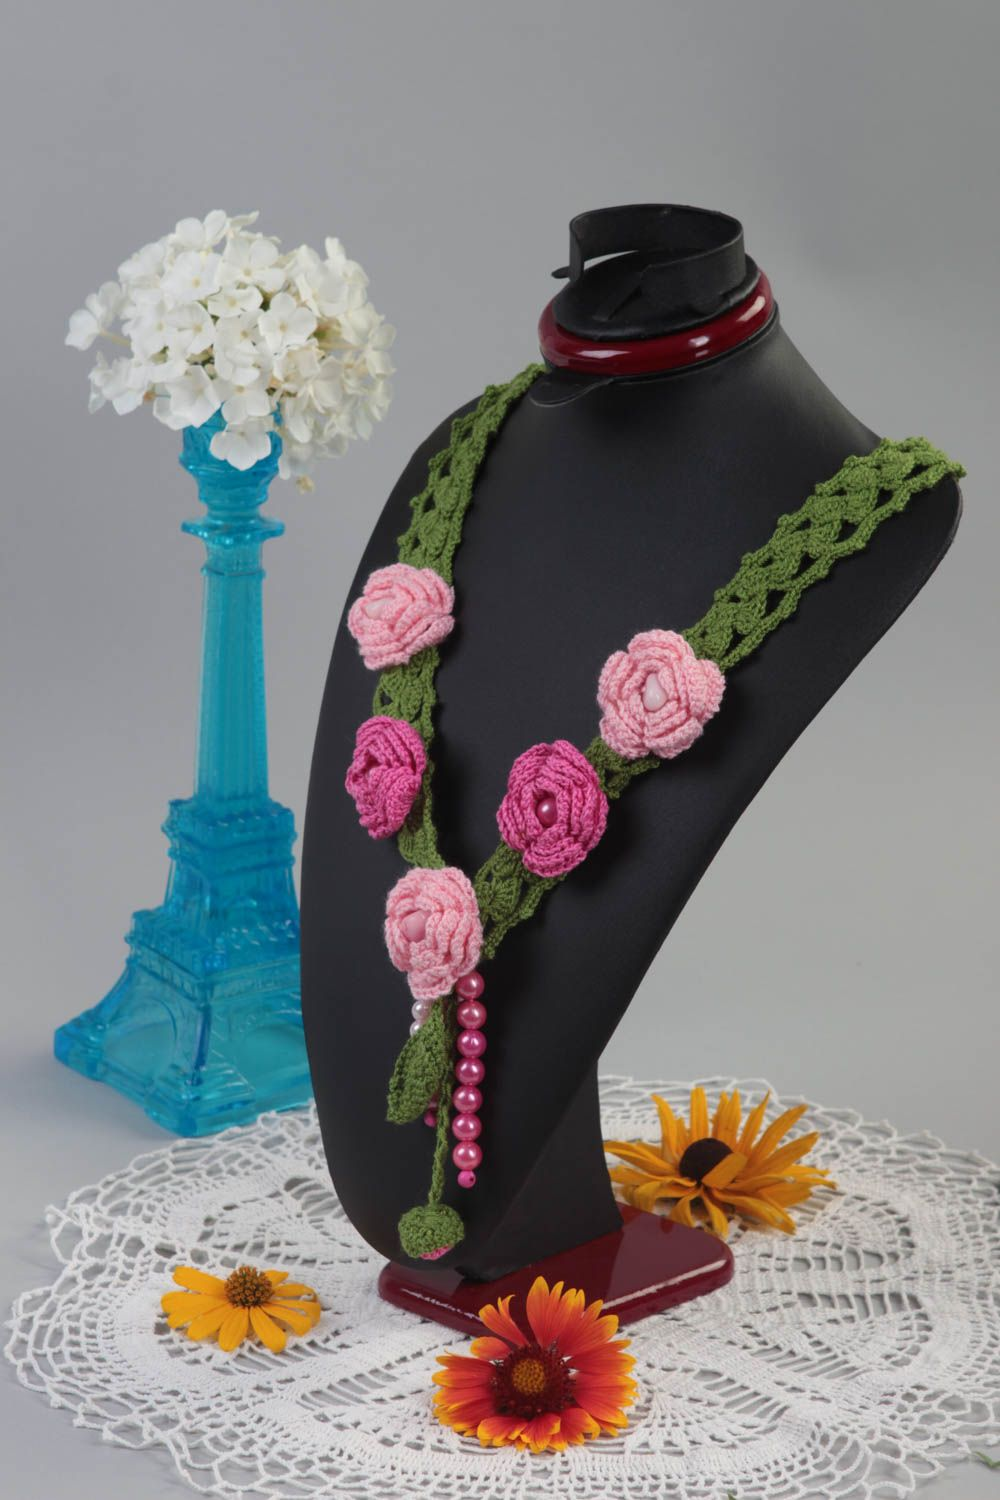 Handmade textile necklace crocheted flower necklace stylish accessory gift photo 1